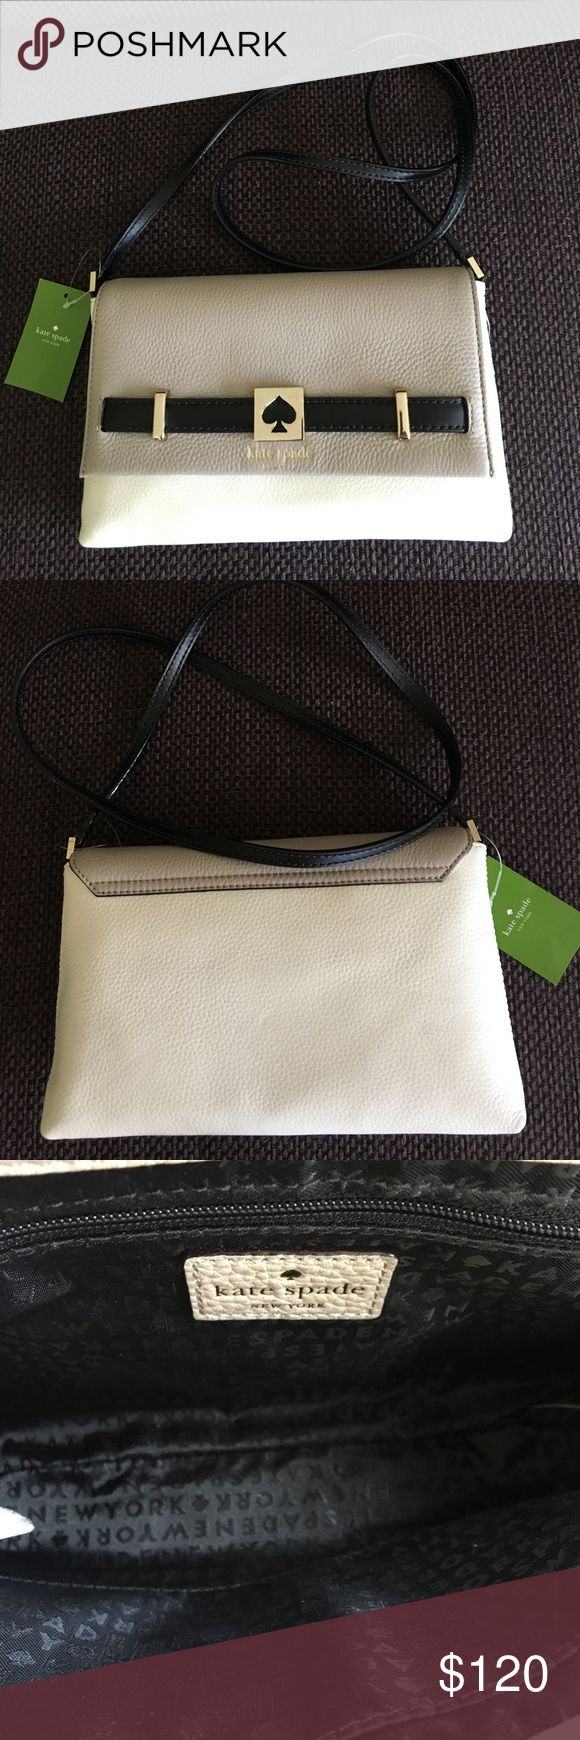 "NWT Kate Spade Houston Street Crossbody NWT Kate Spade Houston Street Crossbody. Cream/Black and Taupe Leather. Inside is black and has 1 zip compartment and 1 regular compartment. Approx 10.5"" x 7"". kate spade Bags Crossbody Bags"